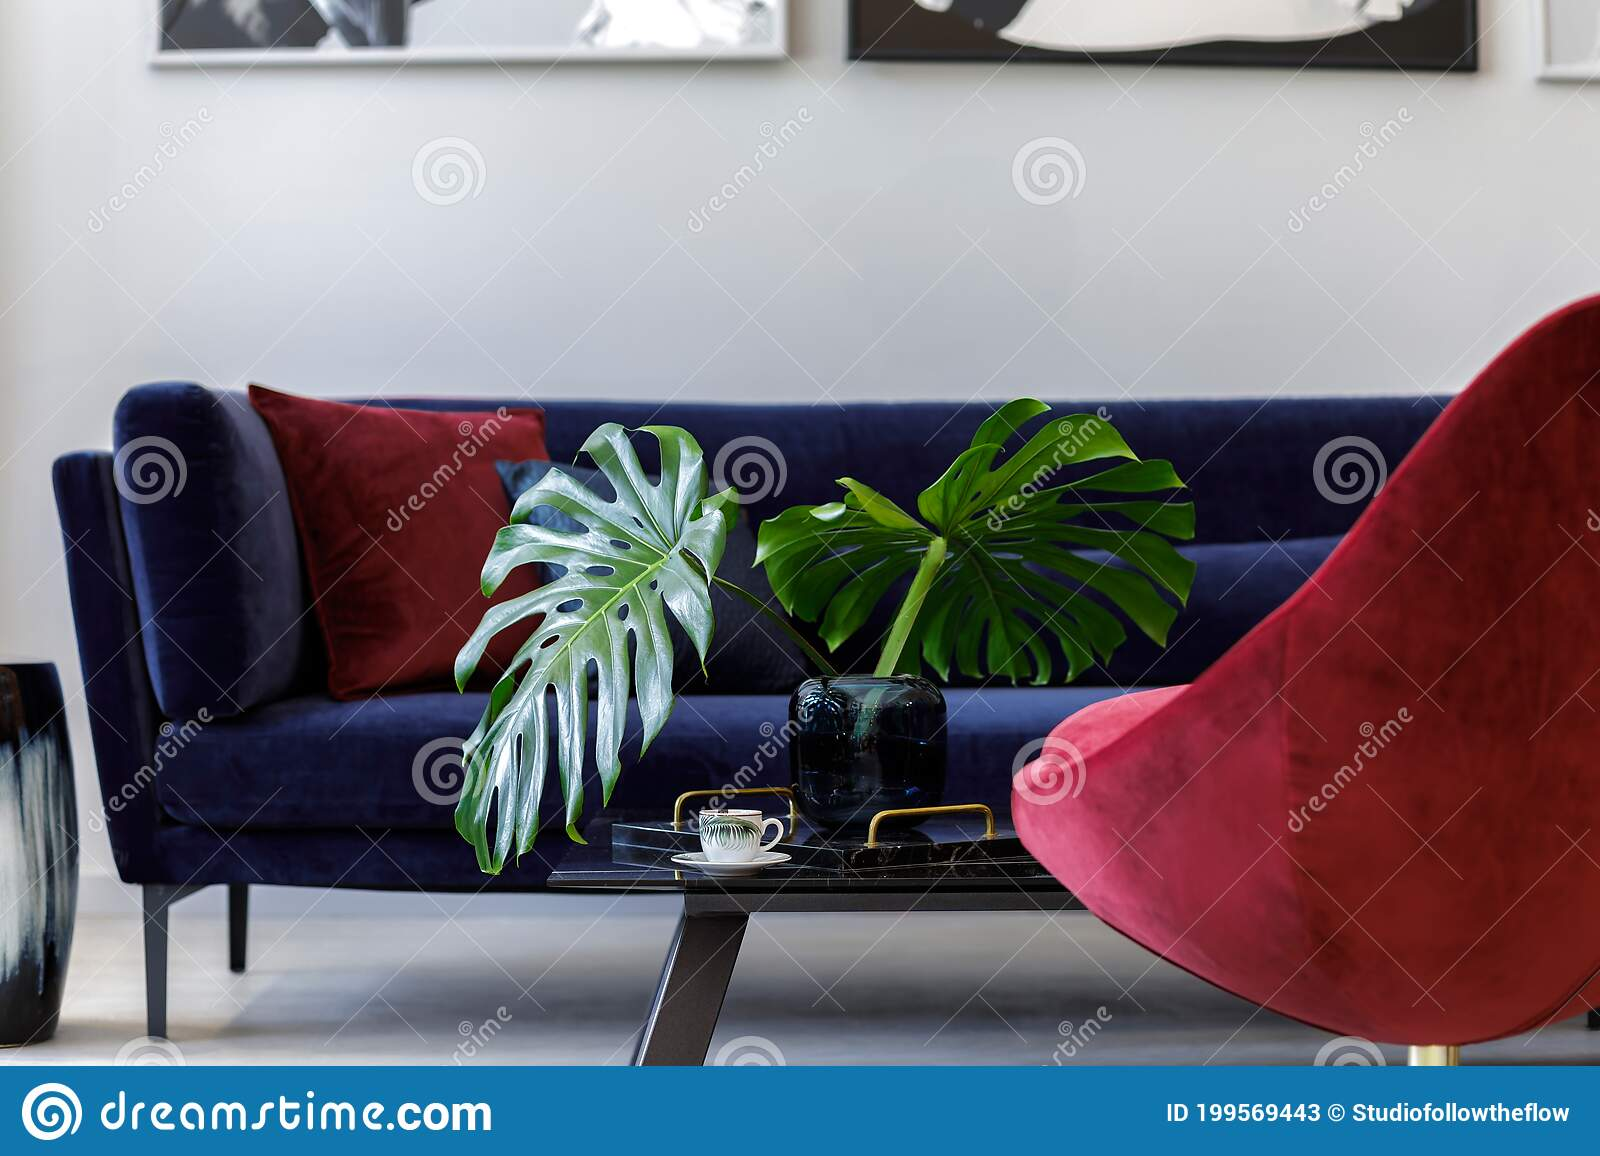 Interior Design Of Living Room With Blue Velvet Sofa Red Armchair Paintings Design Vase Table Decoration Stock Image Image Of Interior Design 199569443